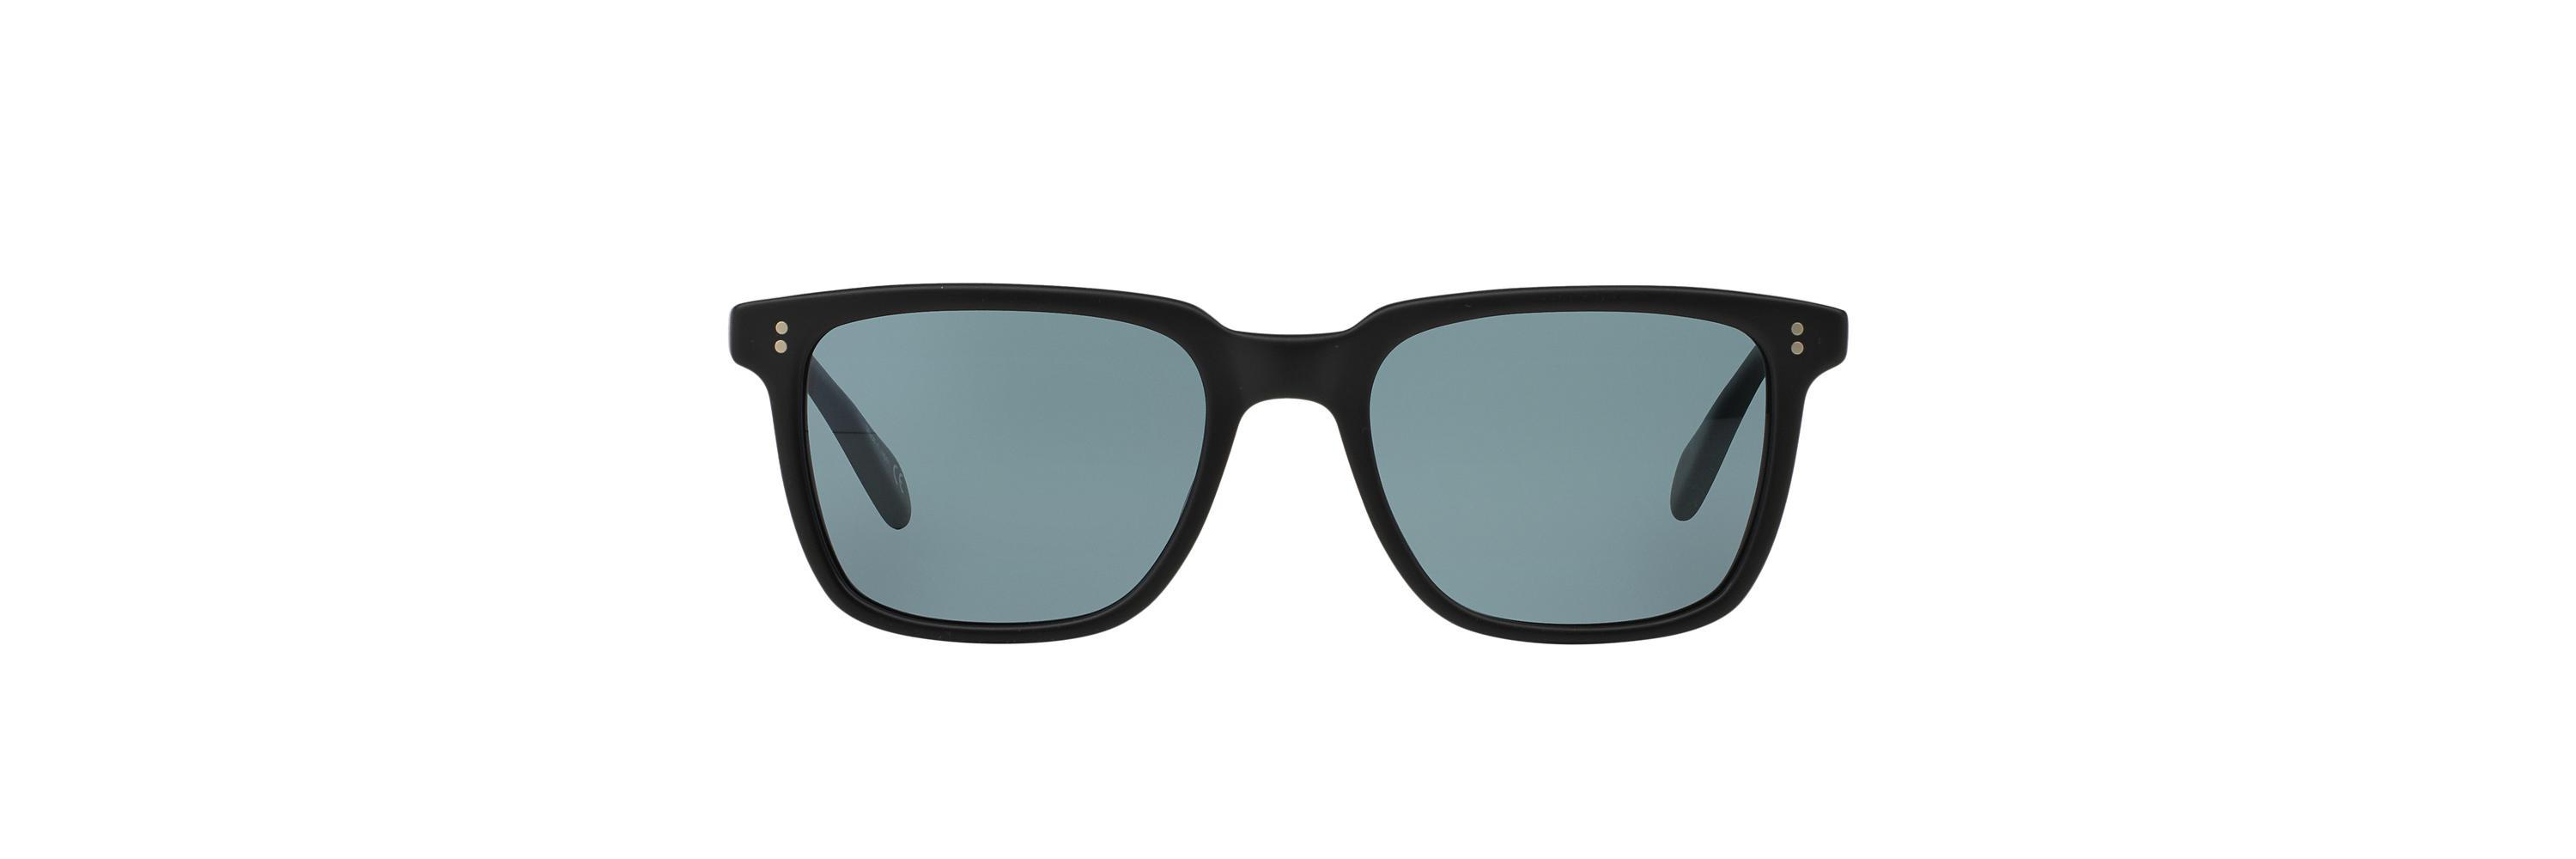 977e56bac3f Lyst - Oliver Peoples Ov5031s 50 Ndg in Black for Men